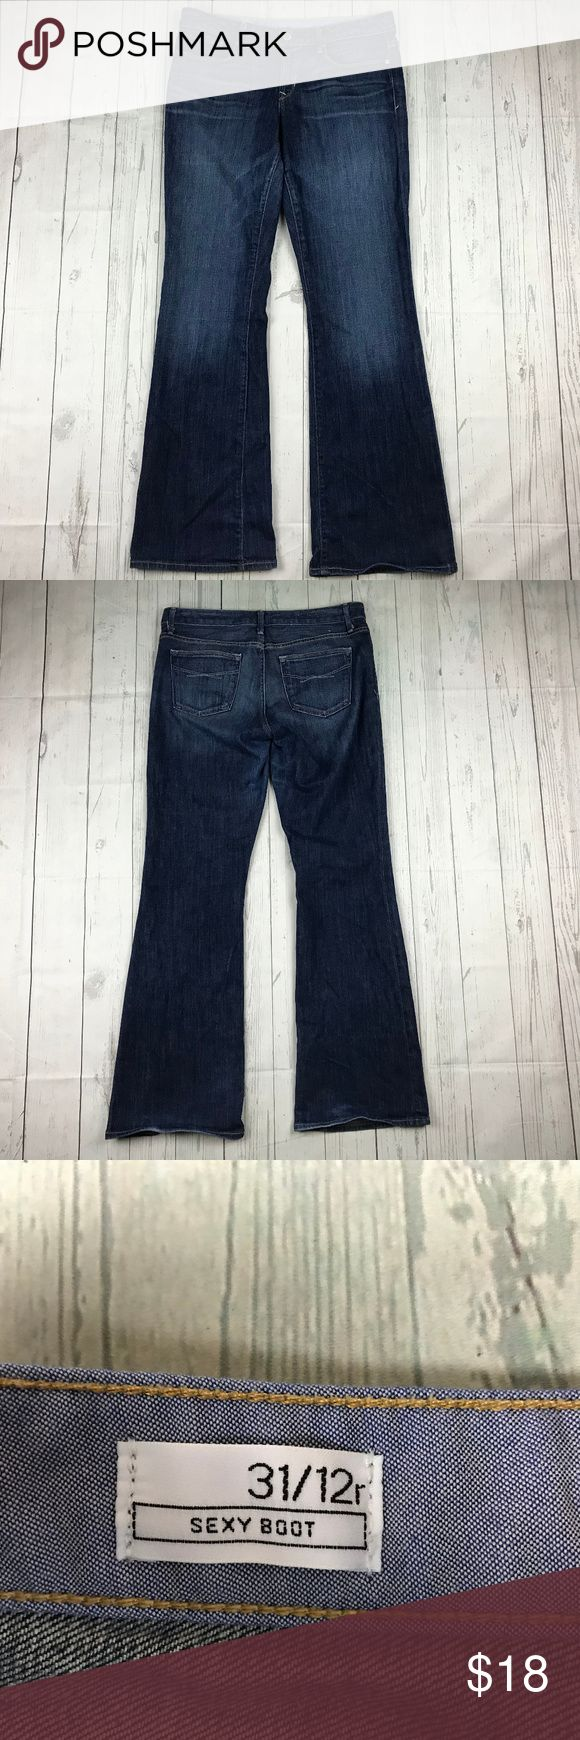 Gap 1969 medium tint sexy boot cut stretch jeans Gap 1969 jeans women's size 12 waist 31 medium tint wash sexy boot cut stretch denim. Made of 98% cotton and 2% spandex.  Waist measurement: 16.5 inches (across the top) Length measurement: 41 inches Inseam measurement: 31 inches GAP Jeans Boot Cut